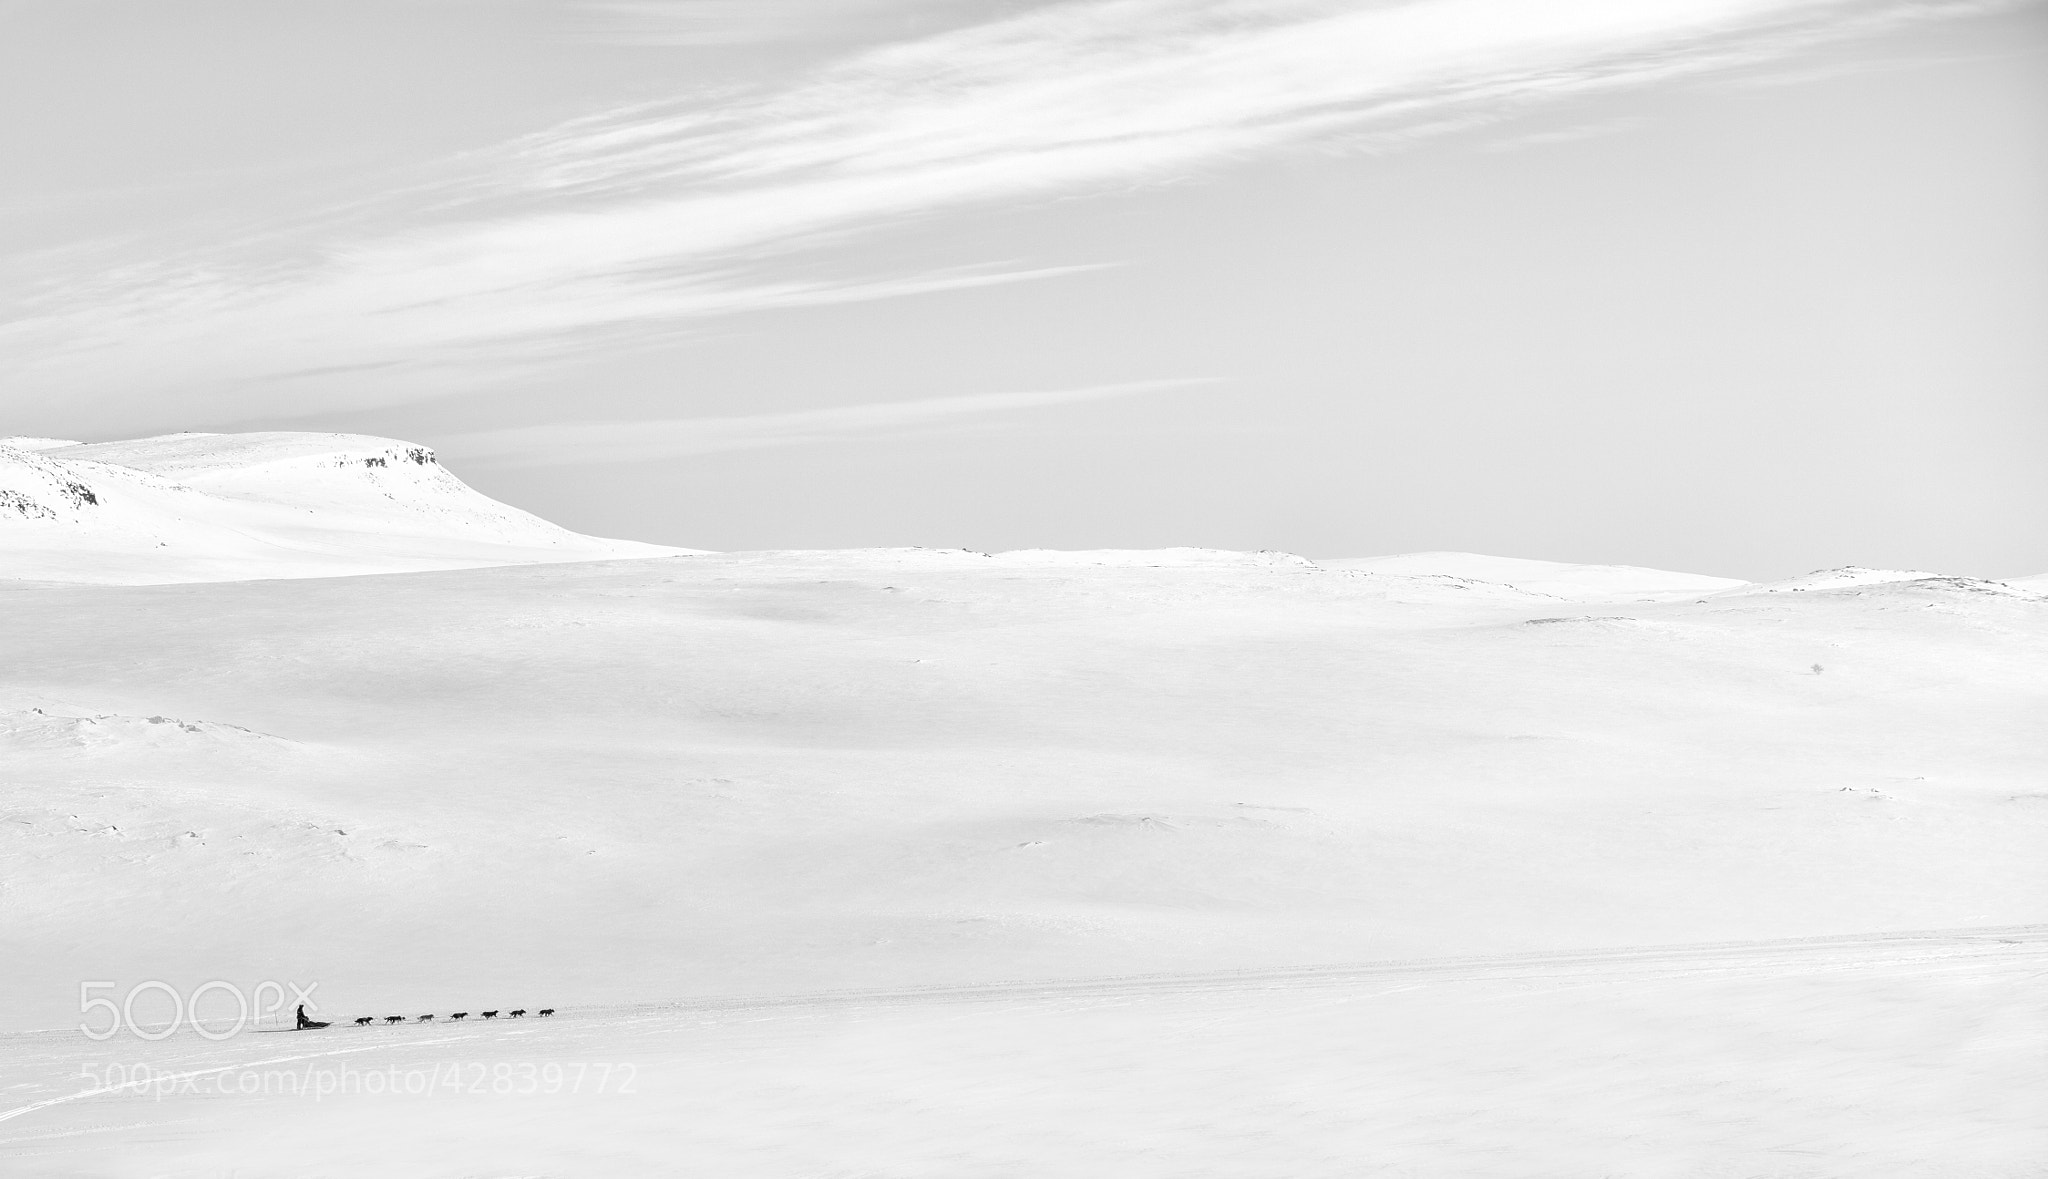 Photograph Sled dogs in the wilderness of Finnmark by Lene Thomassen on 500px